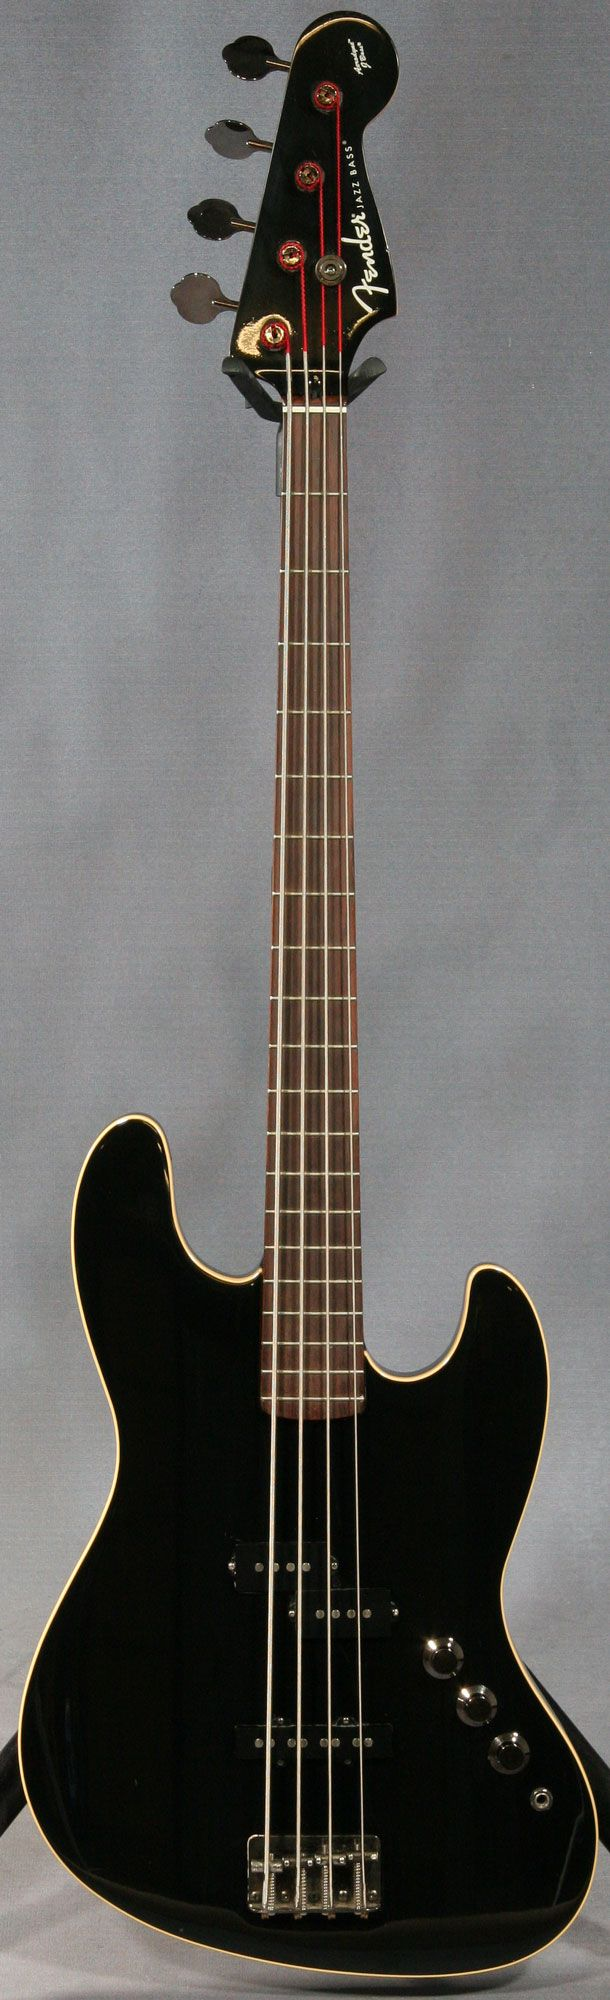 Fender Aerodyne Jazz Bass- My dream bass guitar. If only I had a spare £600 to buy one but sadly that's never going to happen. :(